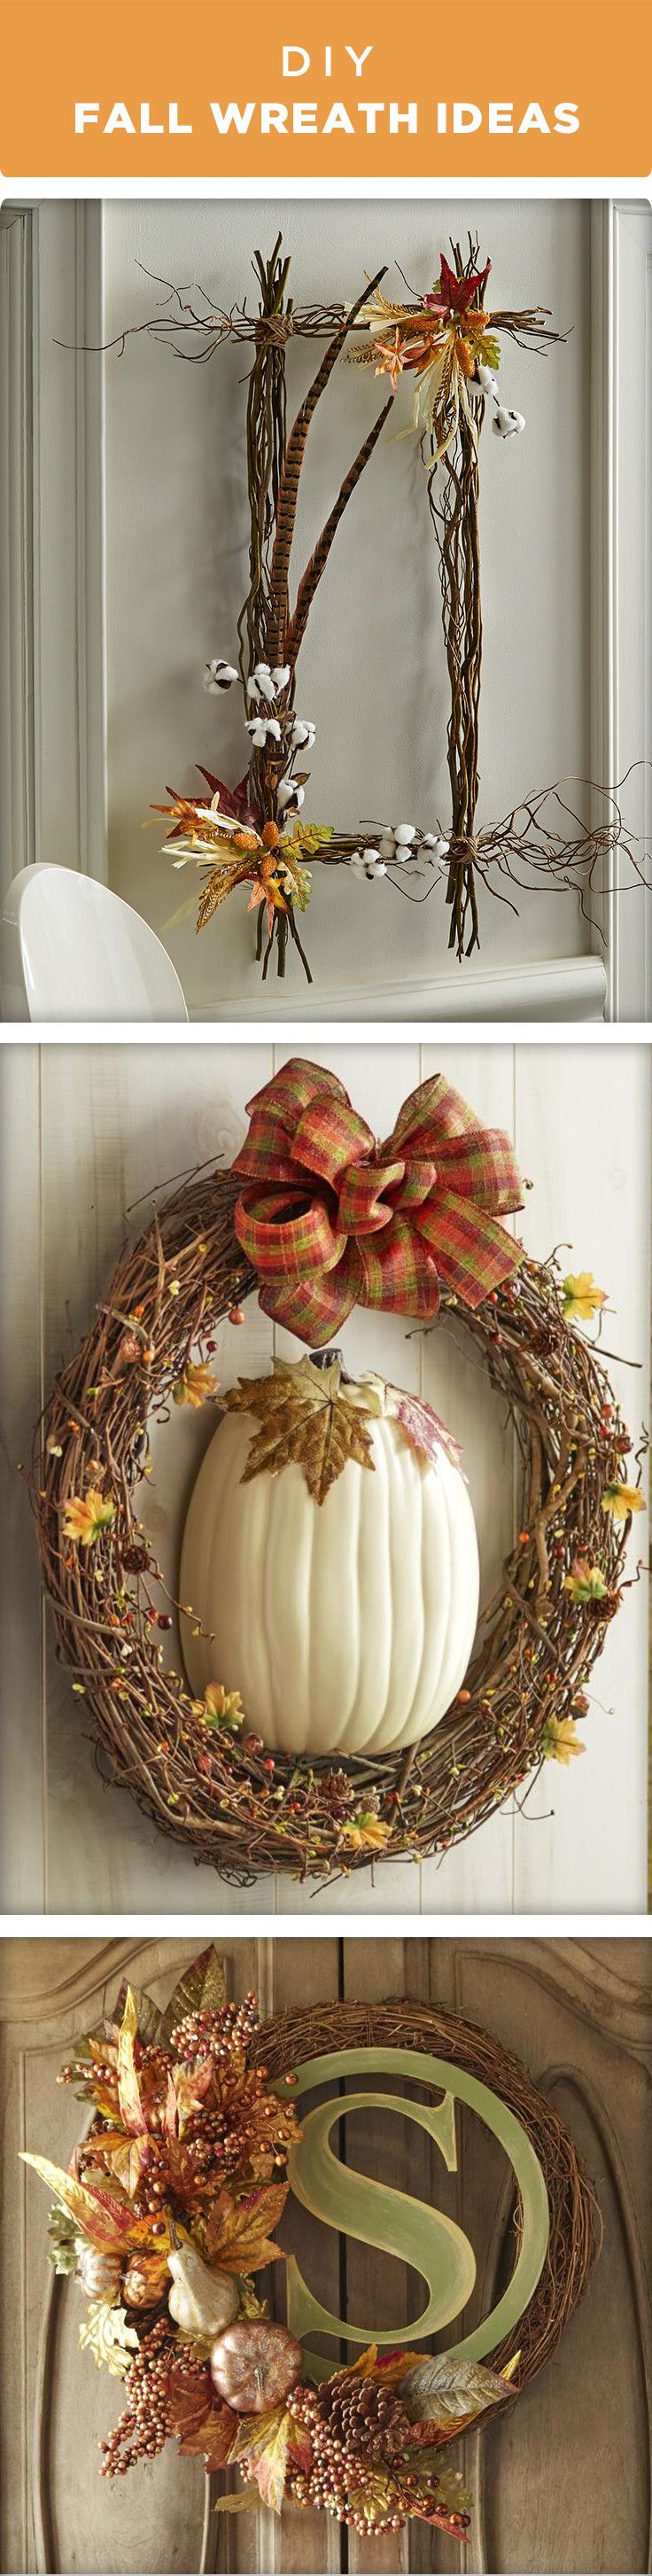 Welcome in Fall and your guests with one of these wreaths ideas that come together in just a few simple steps. Find everything you need to make these wreaths at your local Michaels store!